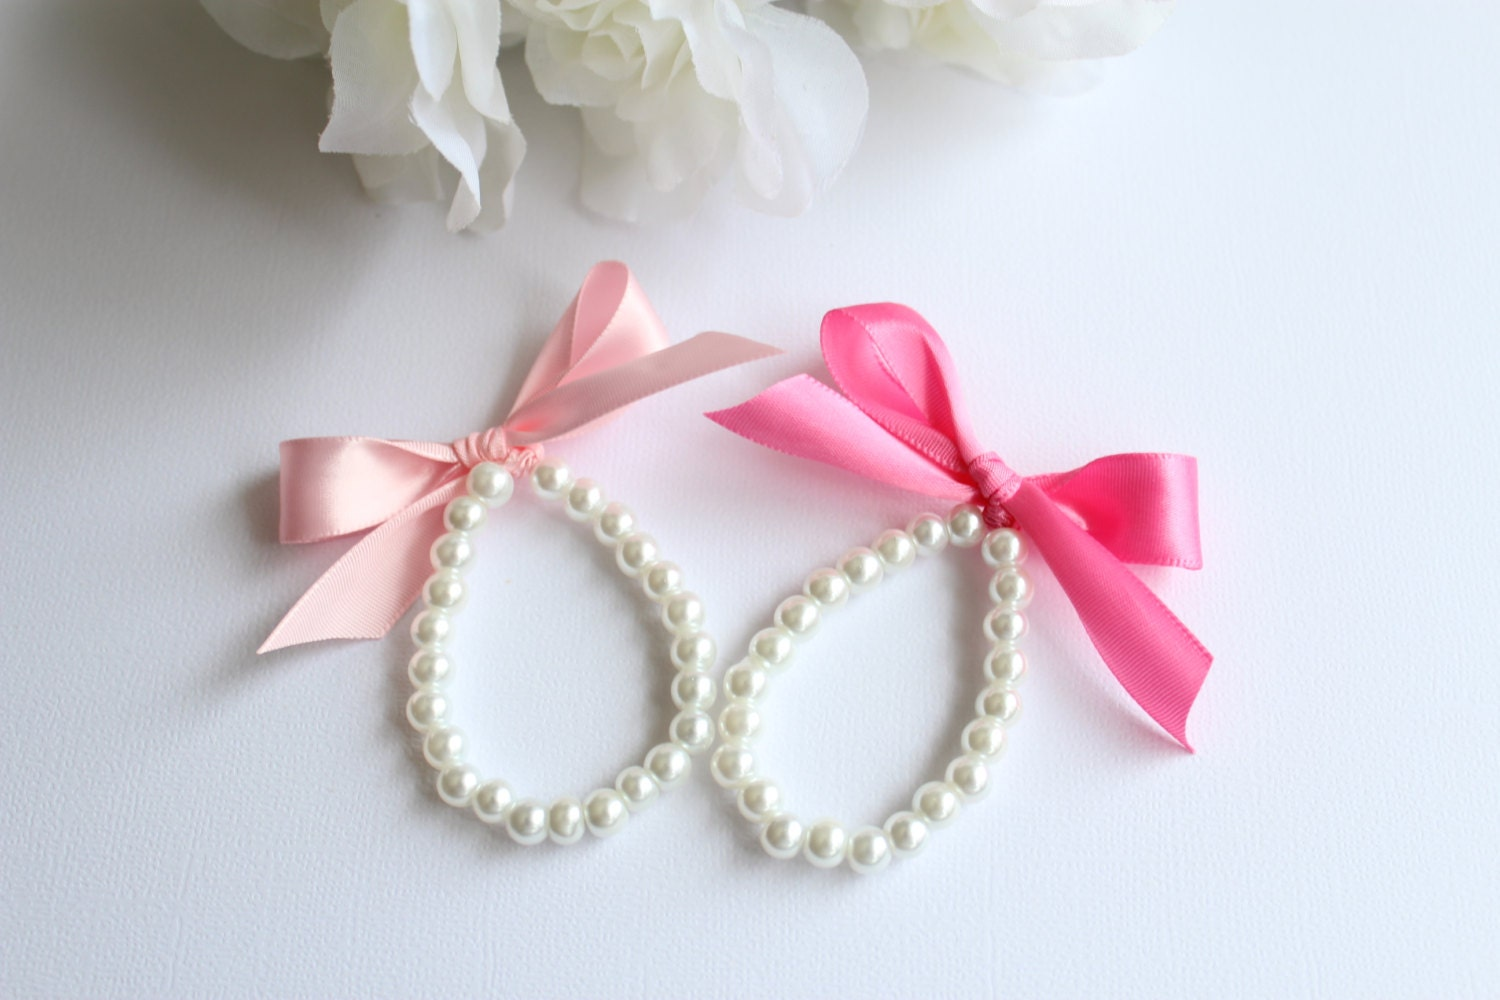 TWO Bracelets 2 Flower Girl Gifts Pearls and Ribbon Jr